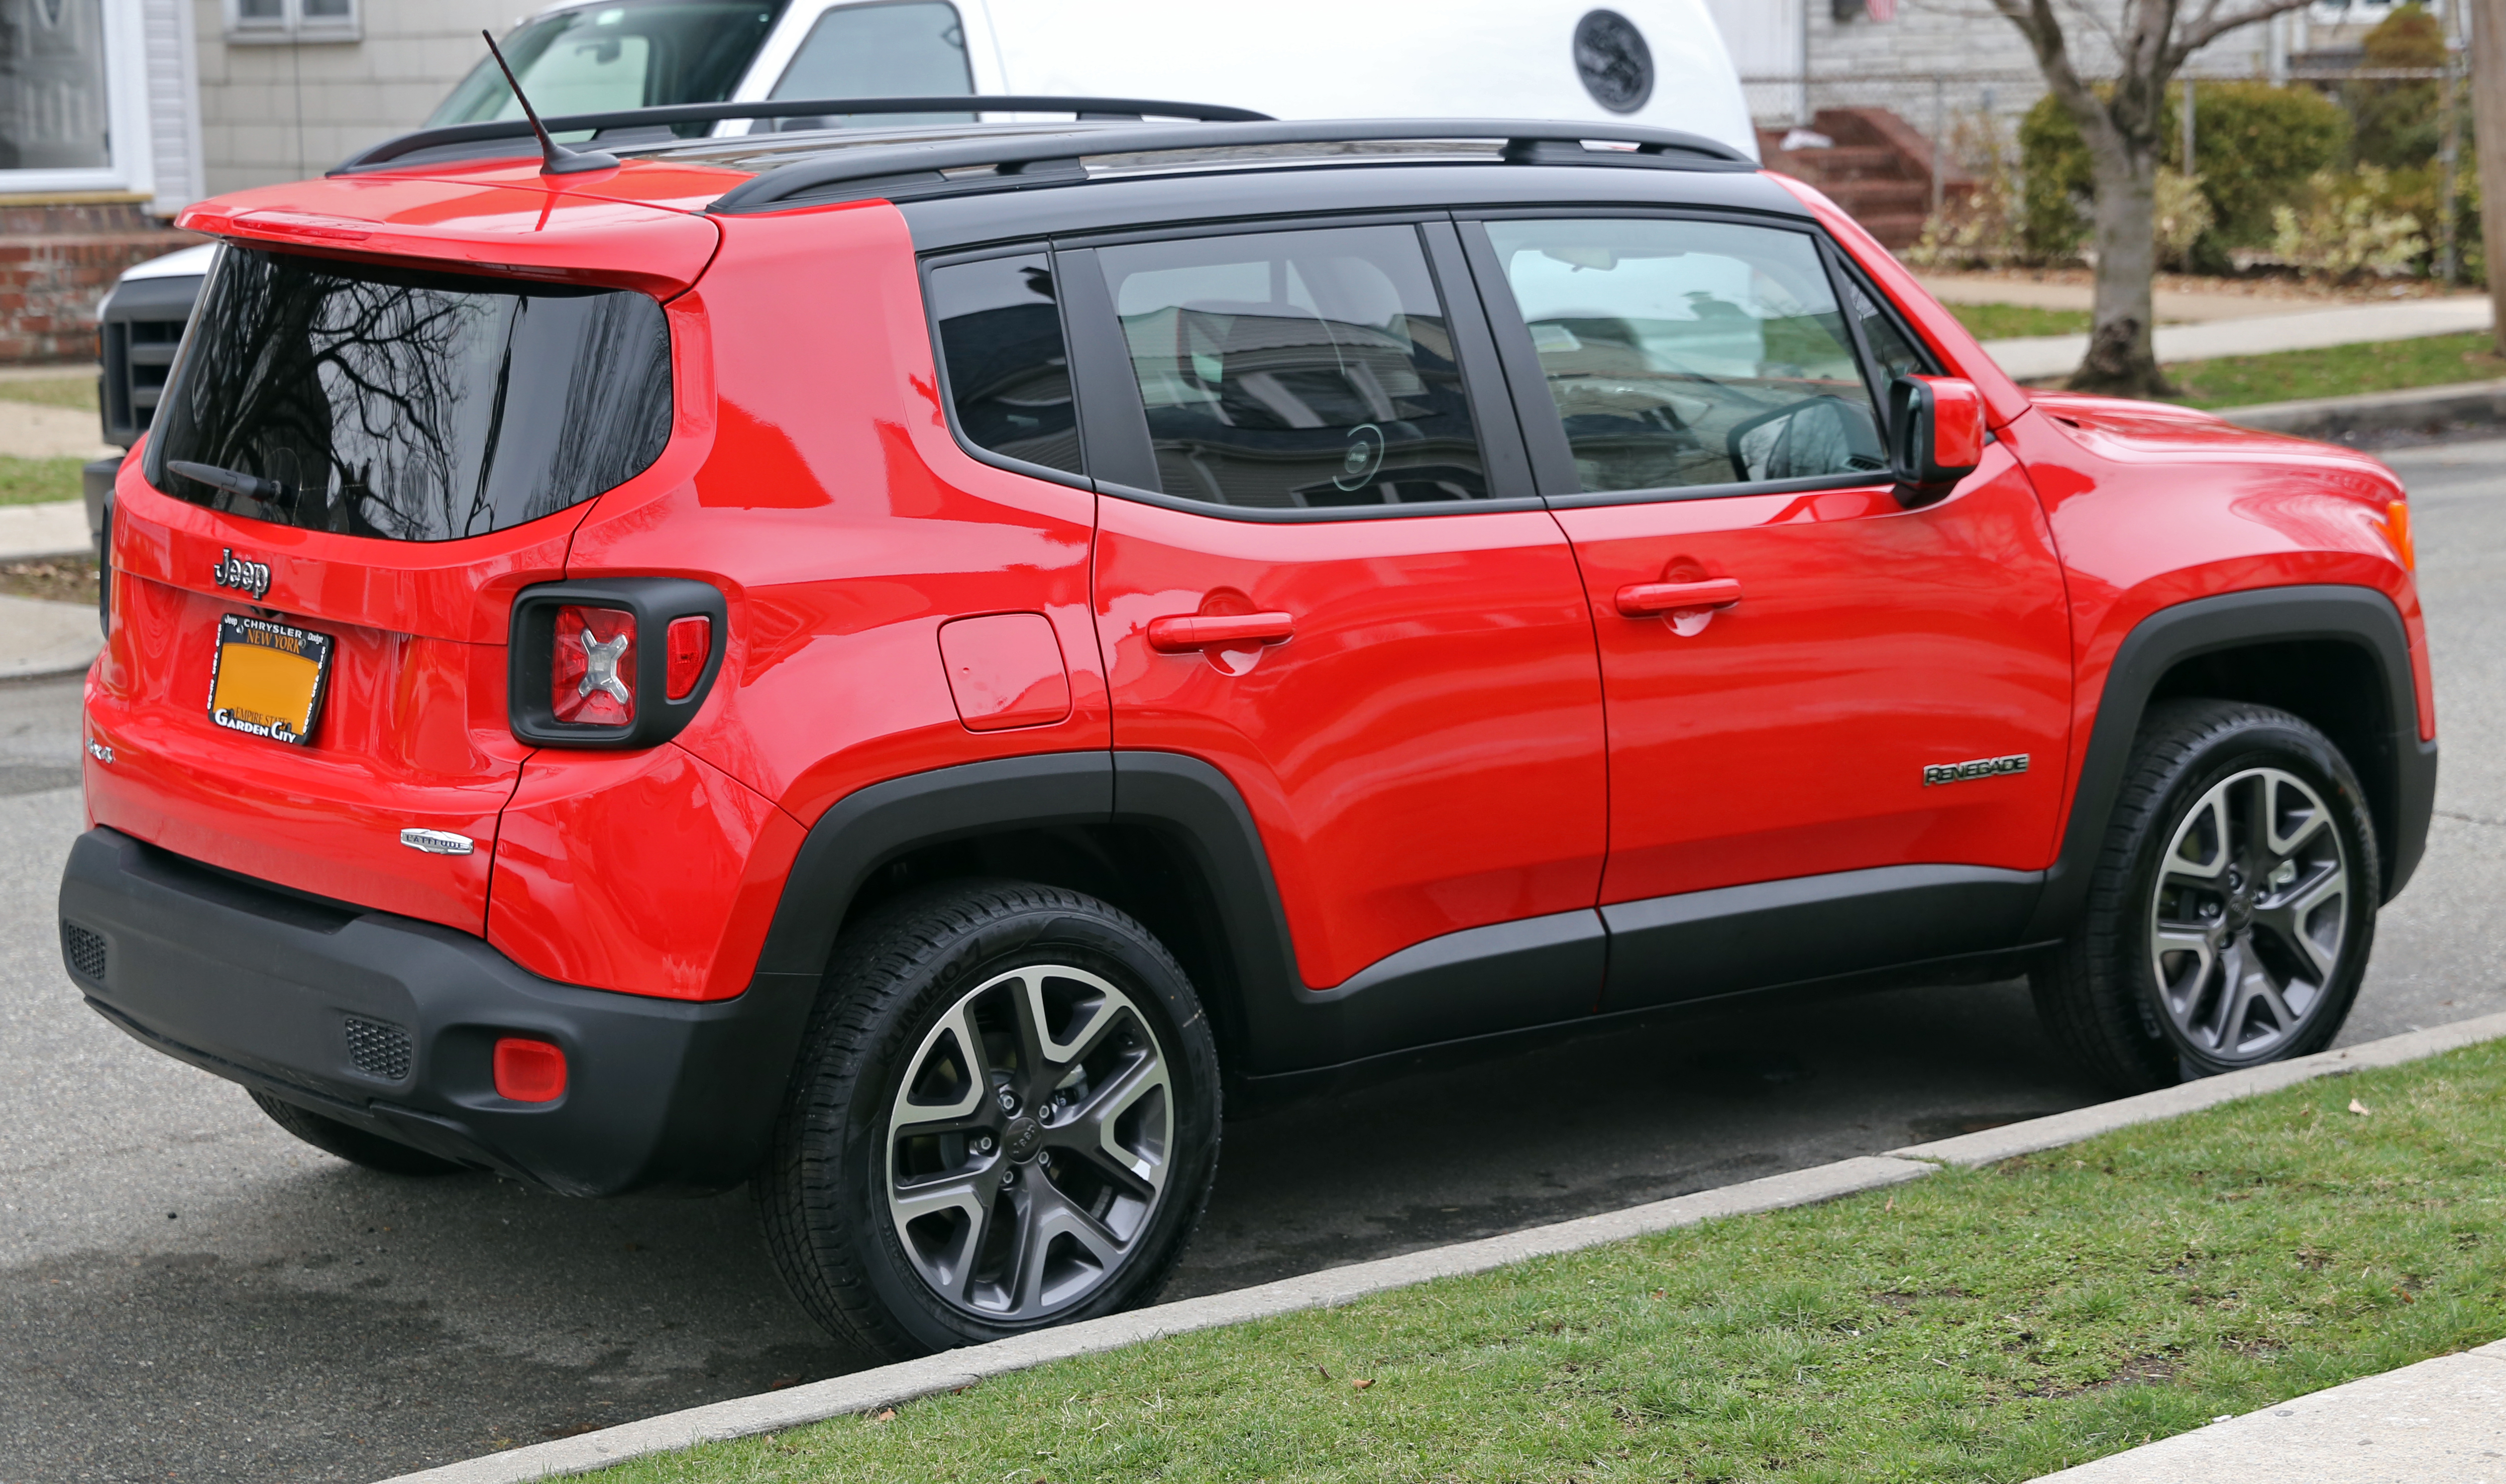 file 2015 jeep renegade latitude colorado red rear wikimedia commons. Black Bedroom Furniture Sets. Home Design Ideas